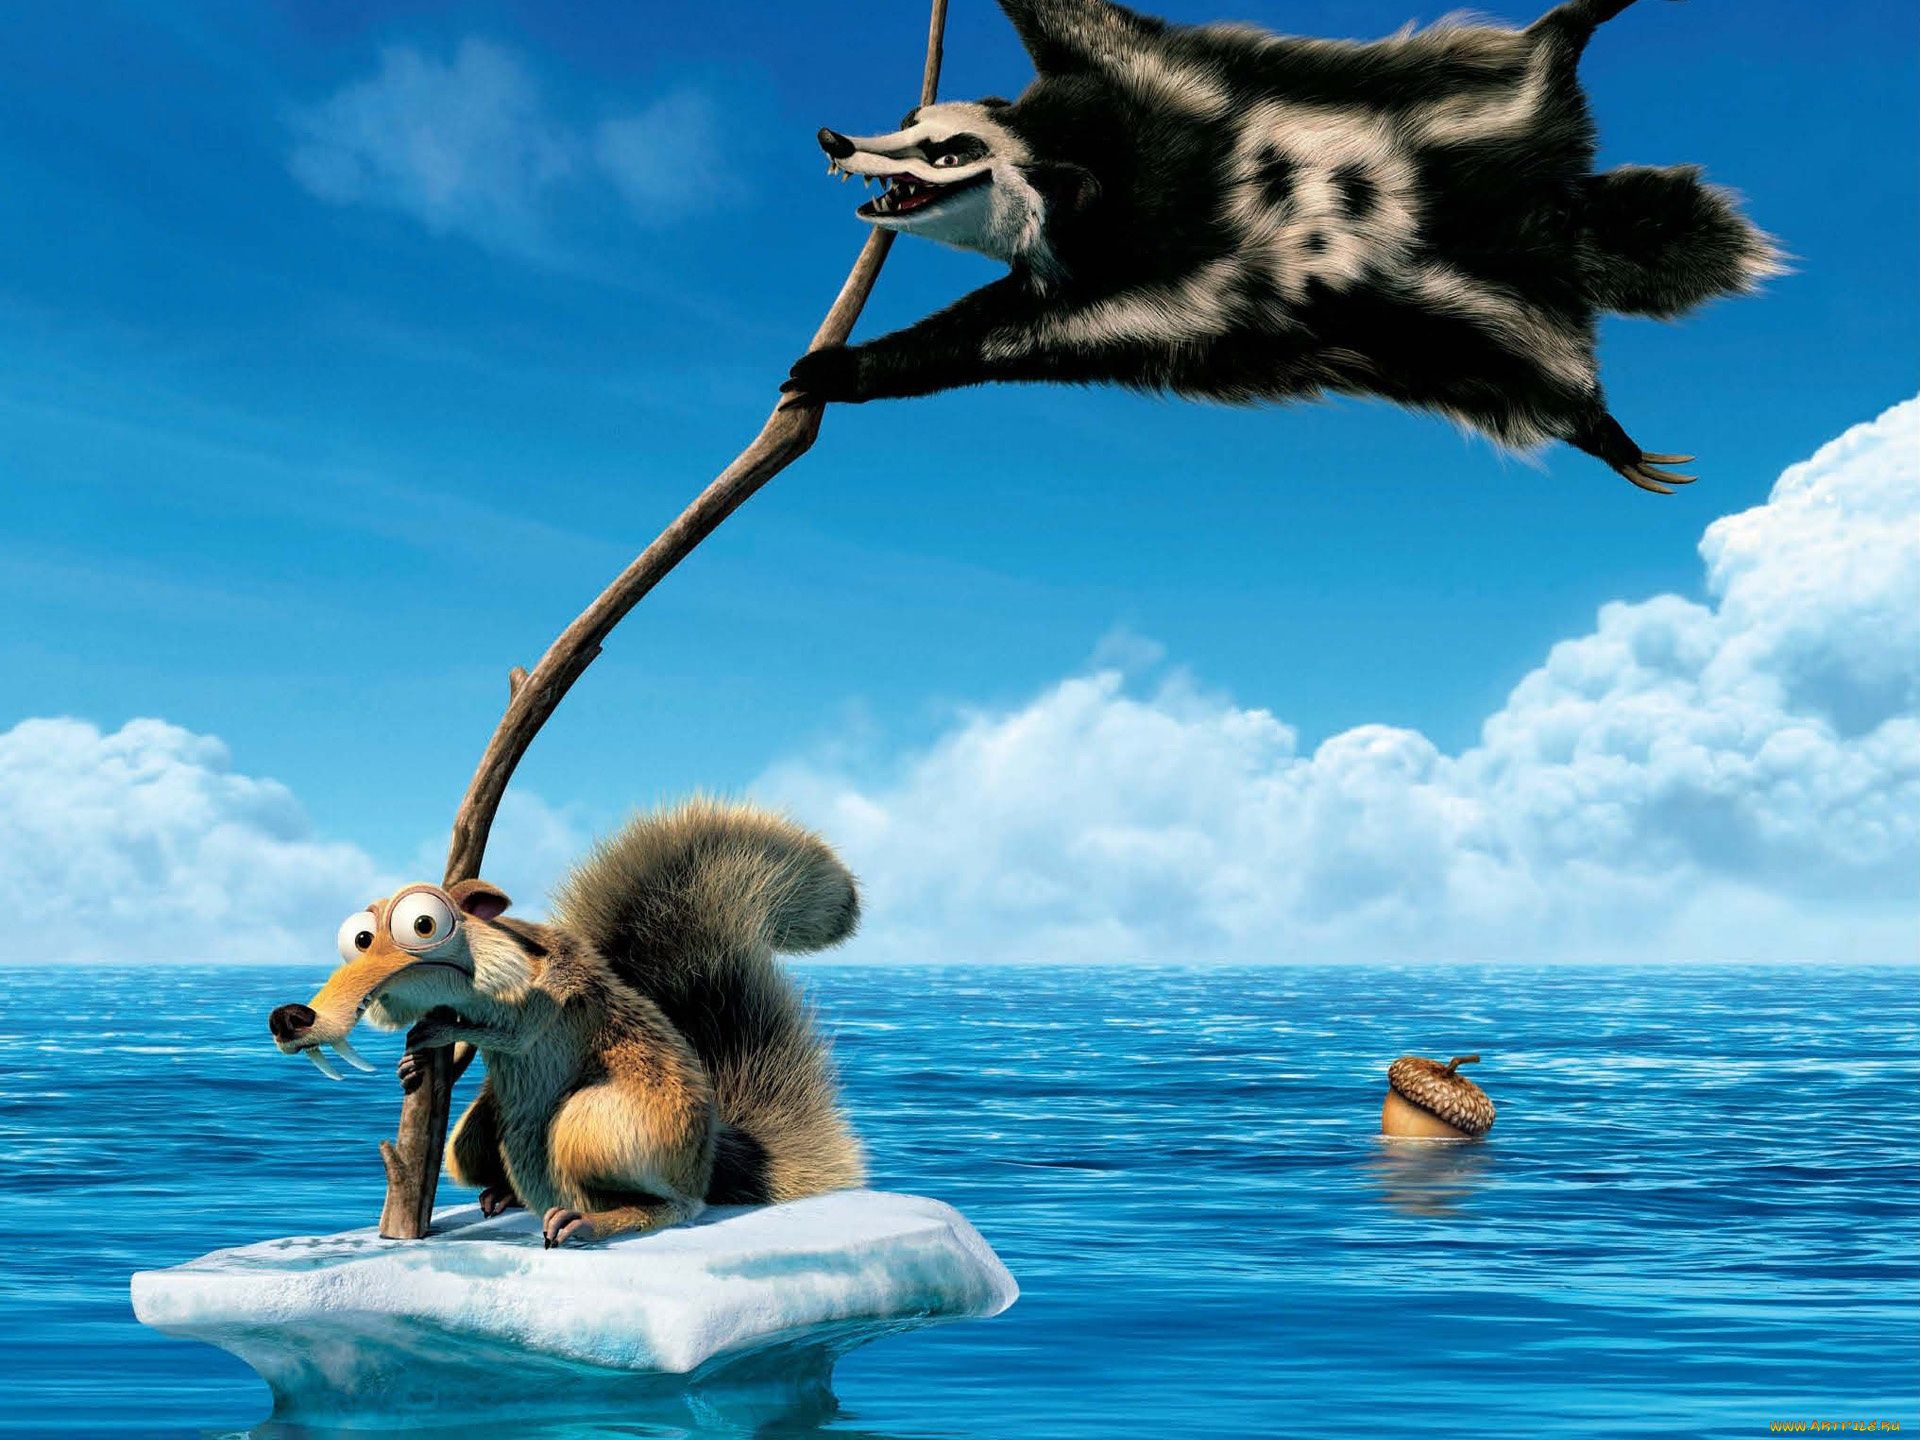 ice age download - HD 1920×1200